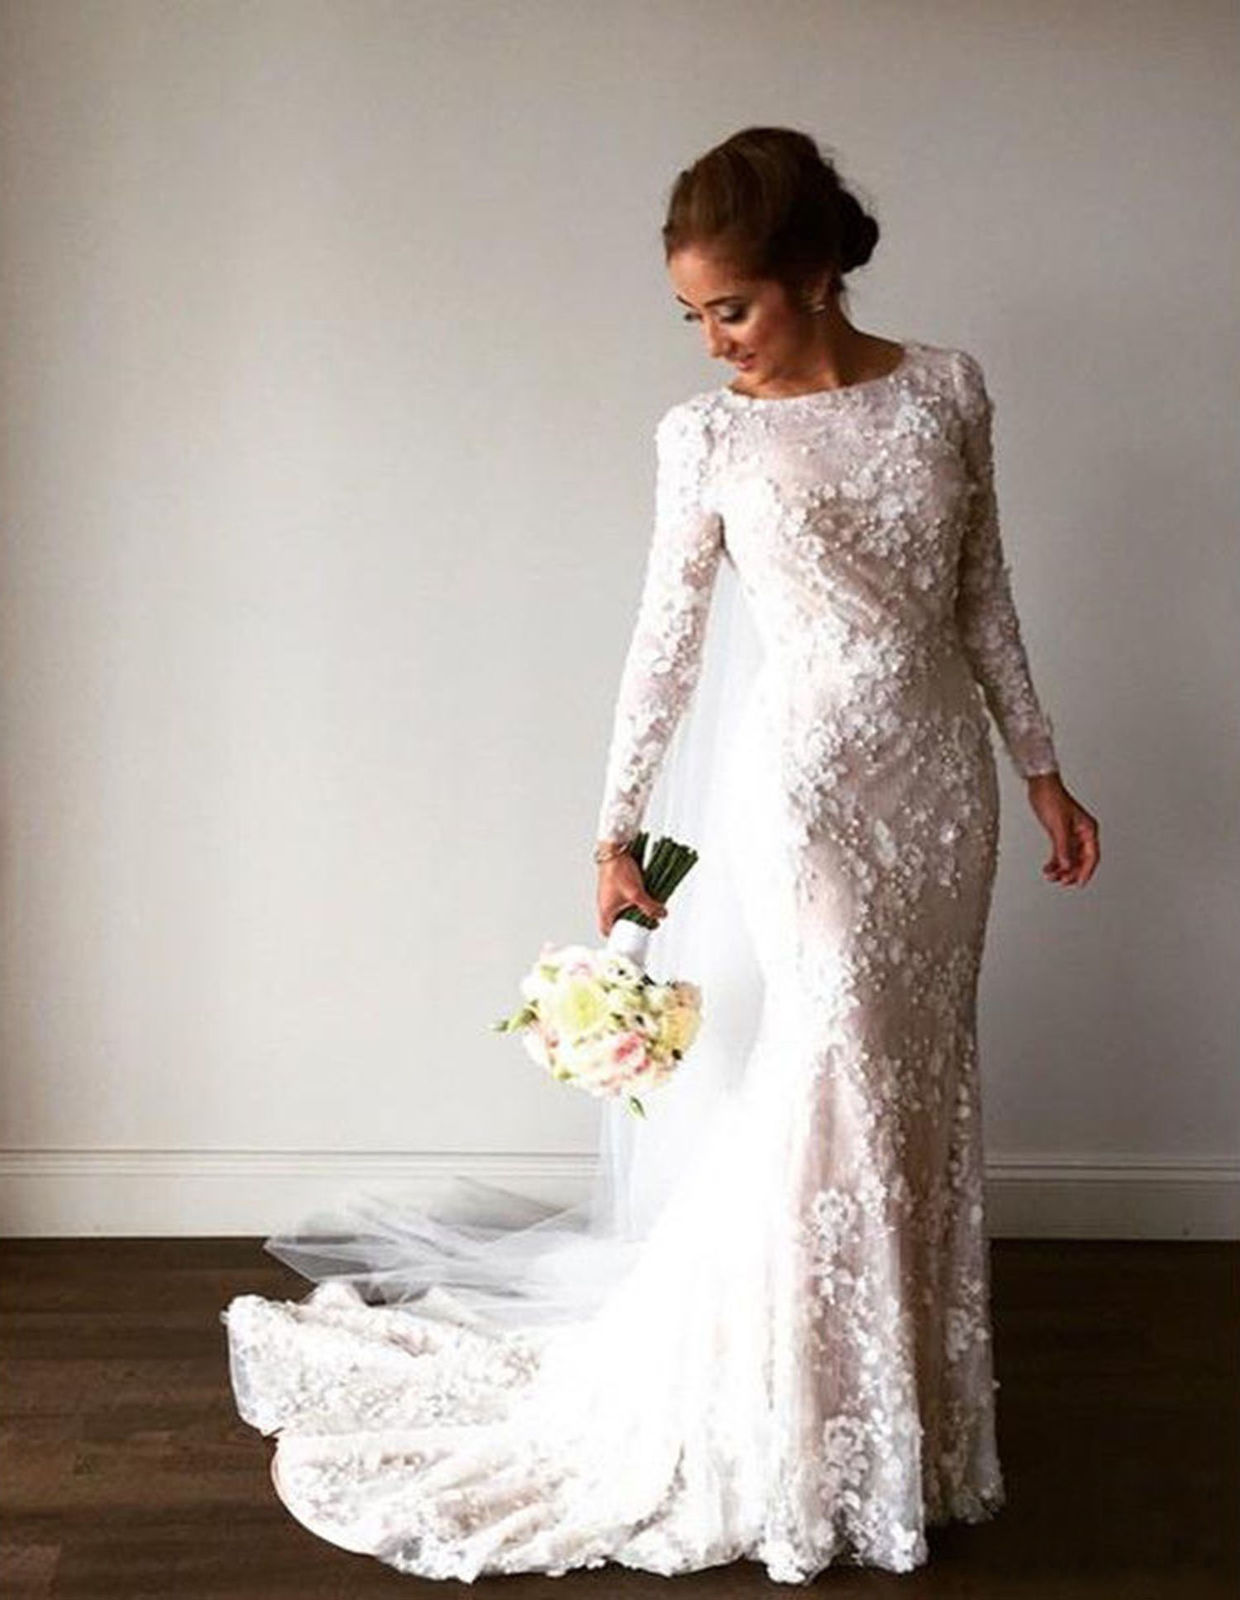 8794ec5a272 Details about Gorgeous Flower Lace Beaded Wedding Dresses Long Sleeve  Mermaid Bridal Gown 2019